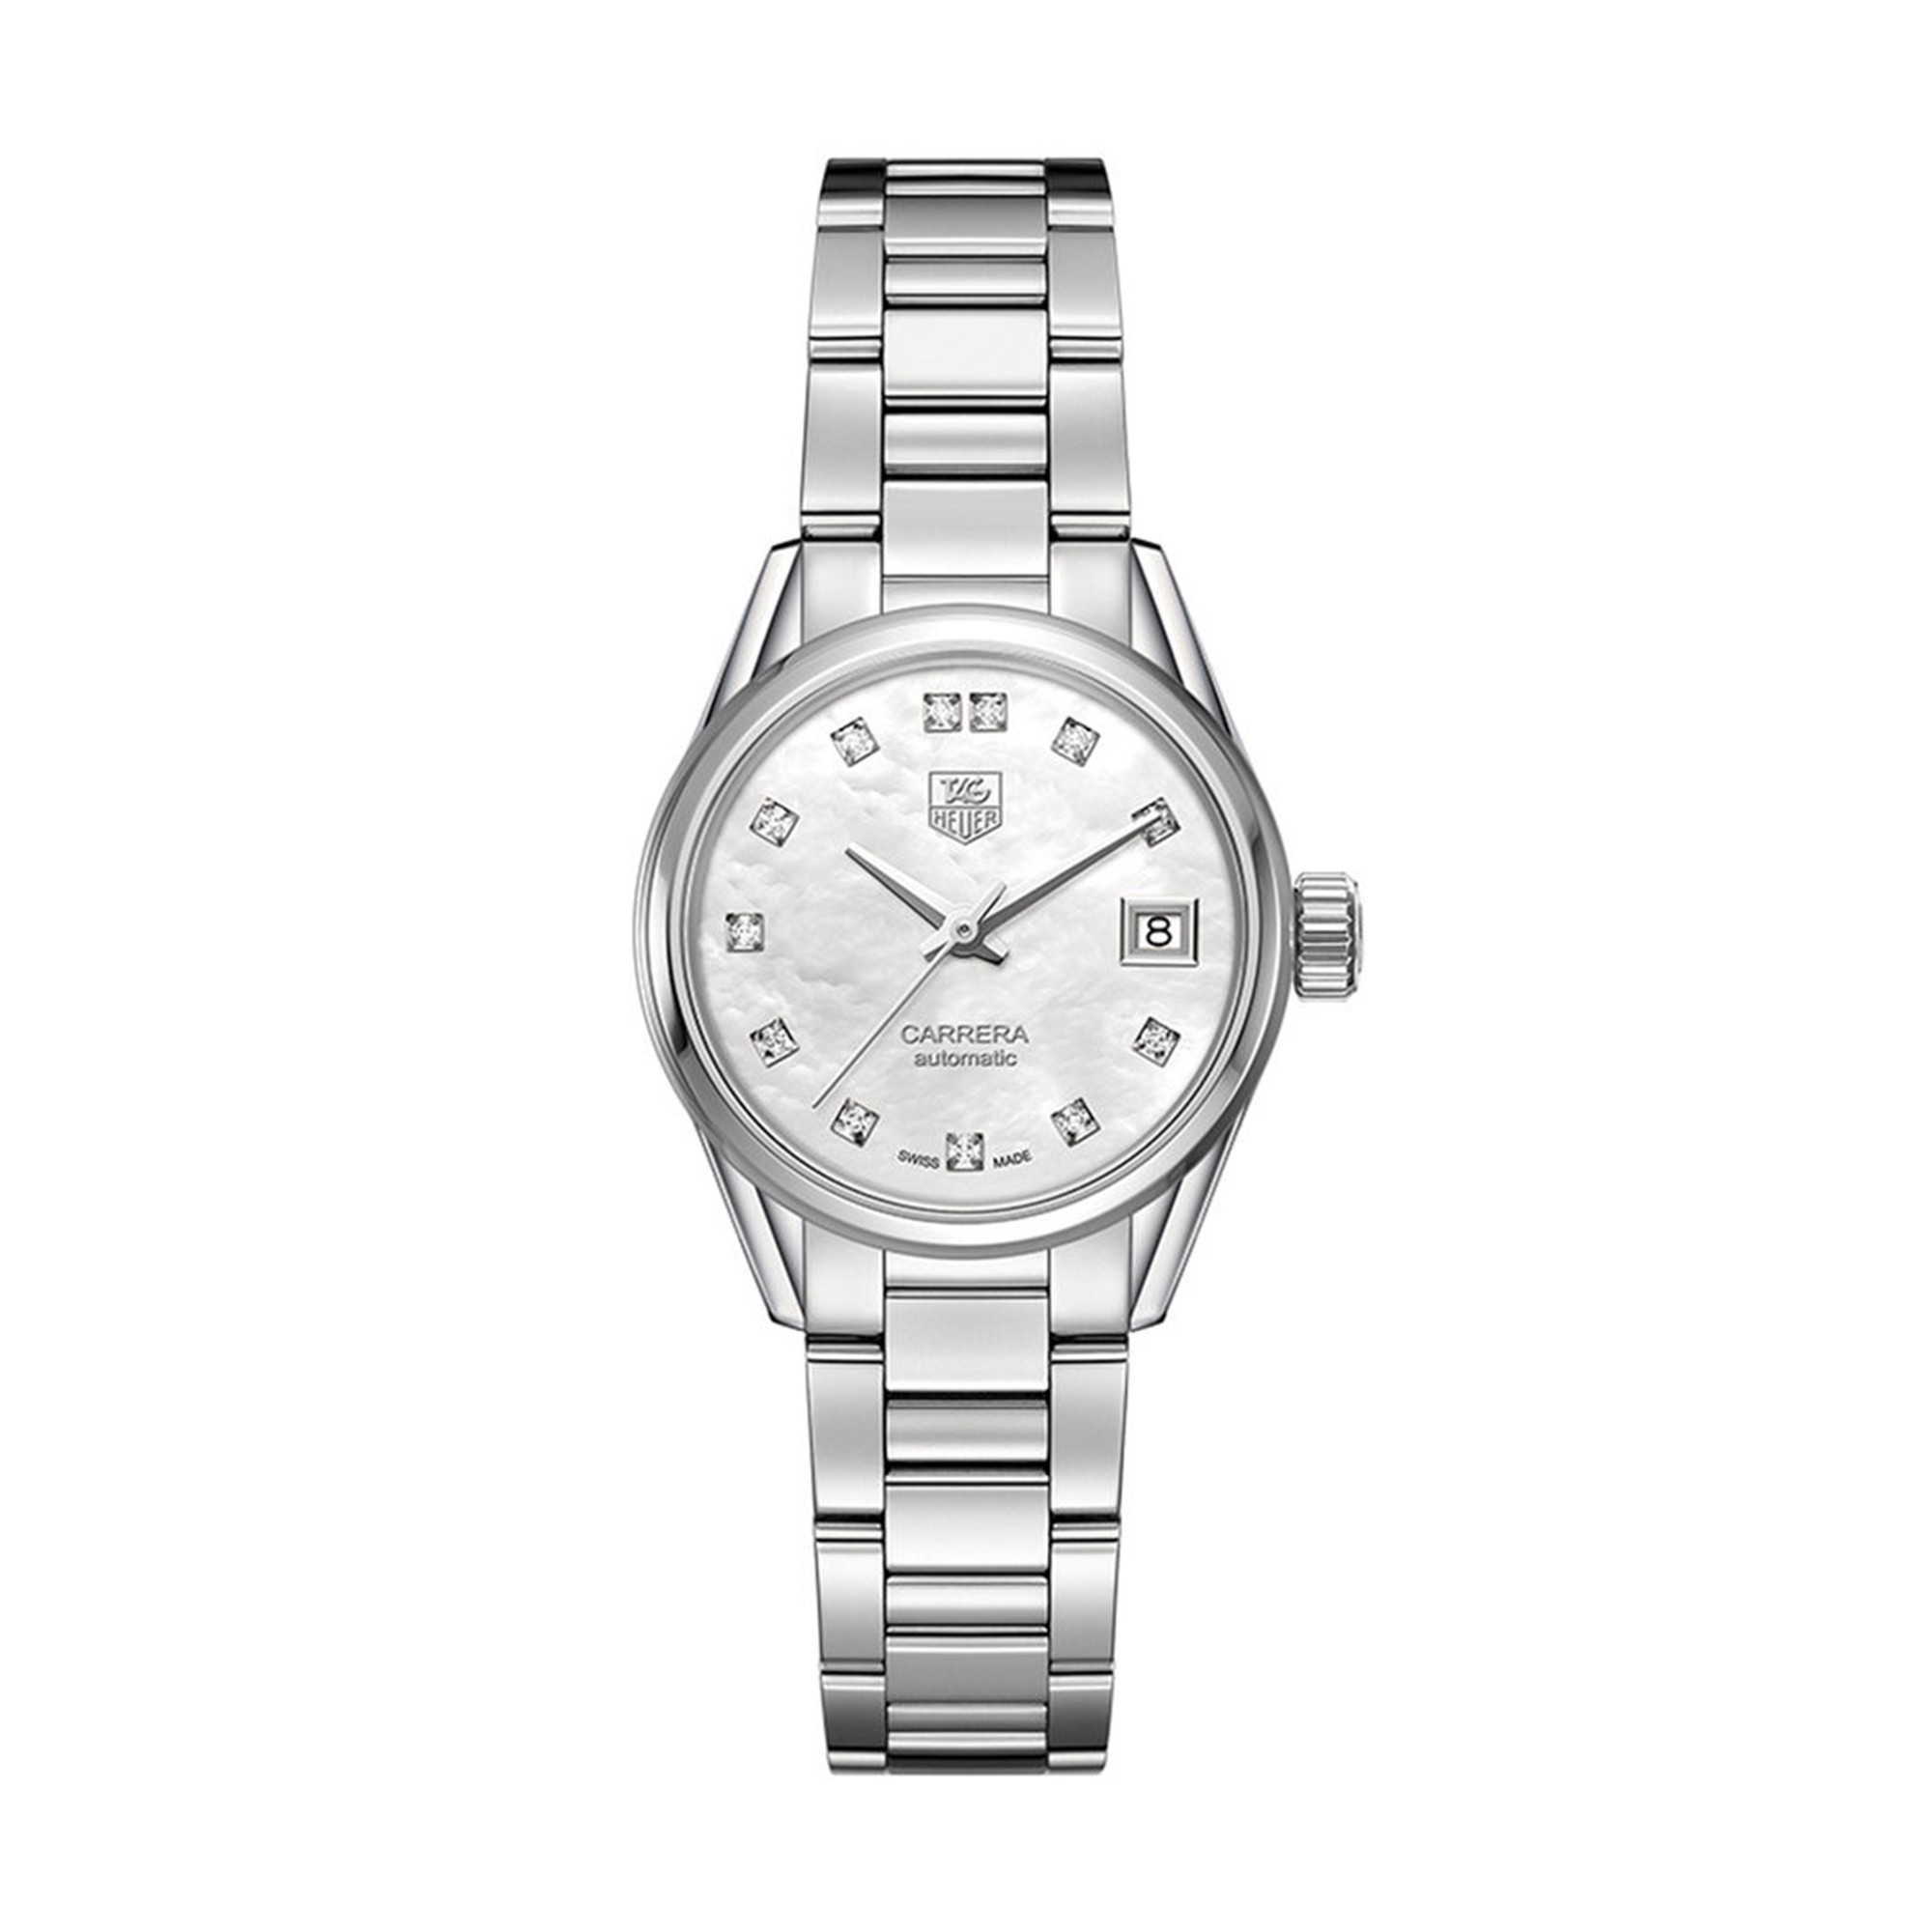 Tag Heuer Carrera Automatic Stainless Steel Bracelet Watch